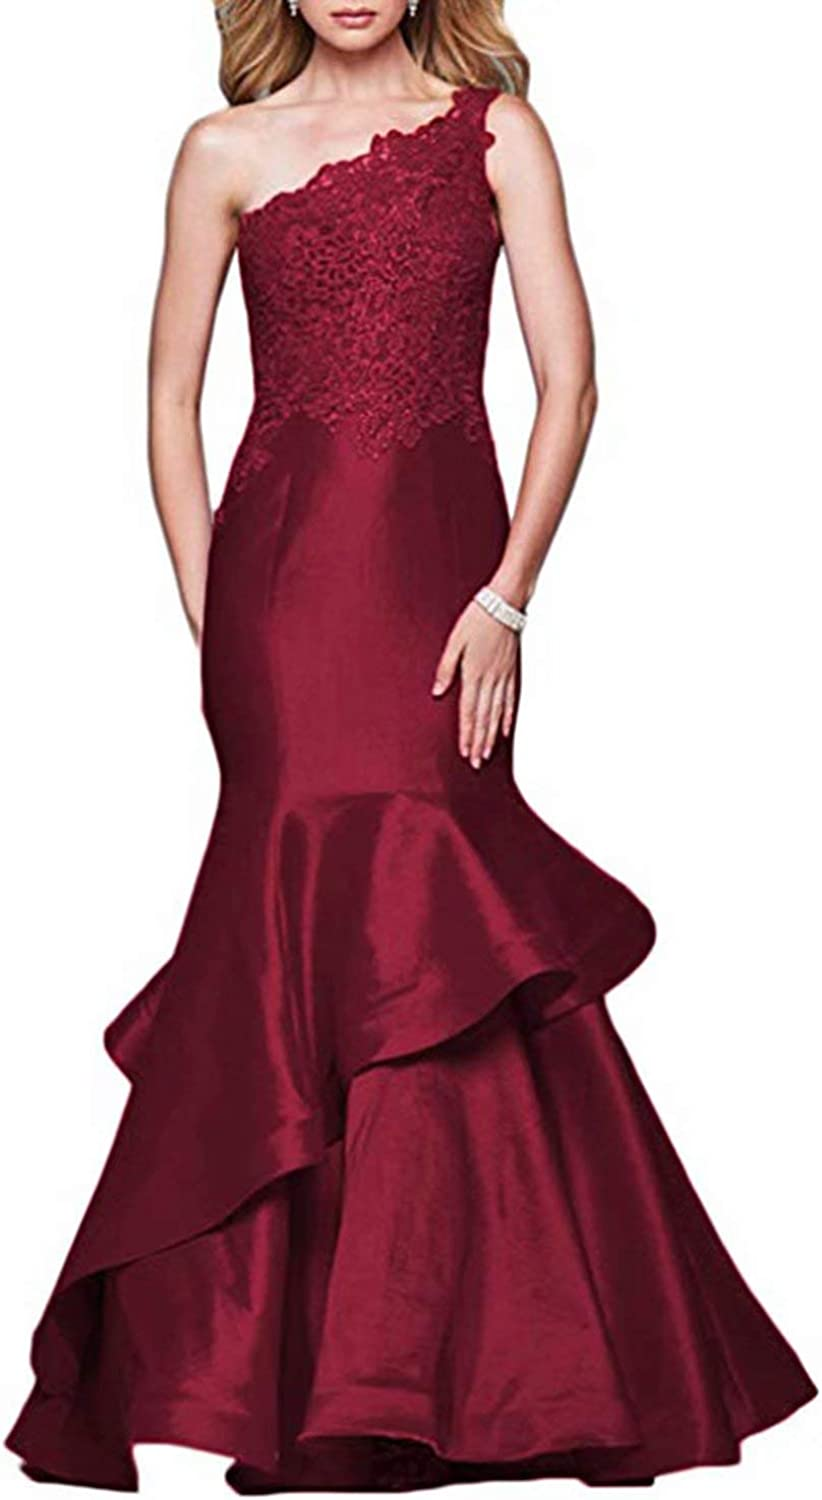 Scarisee Womens Mermaid OneShoulder Lace Prom Evening Party Dresses RufflesA217